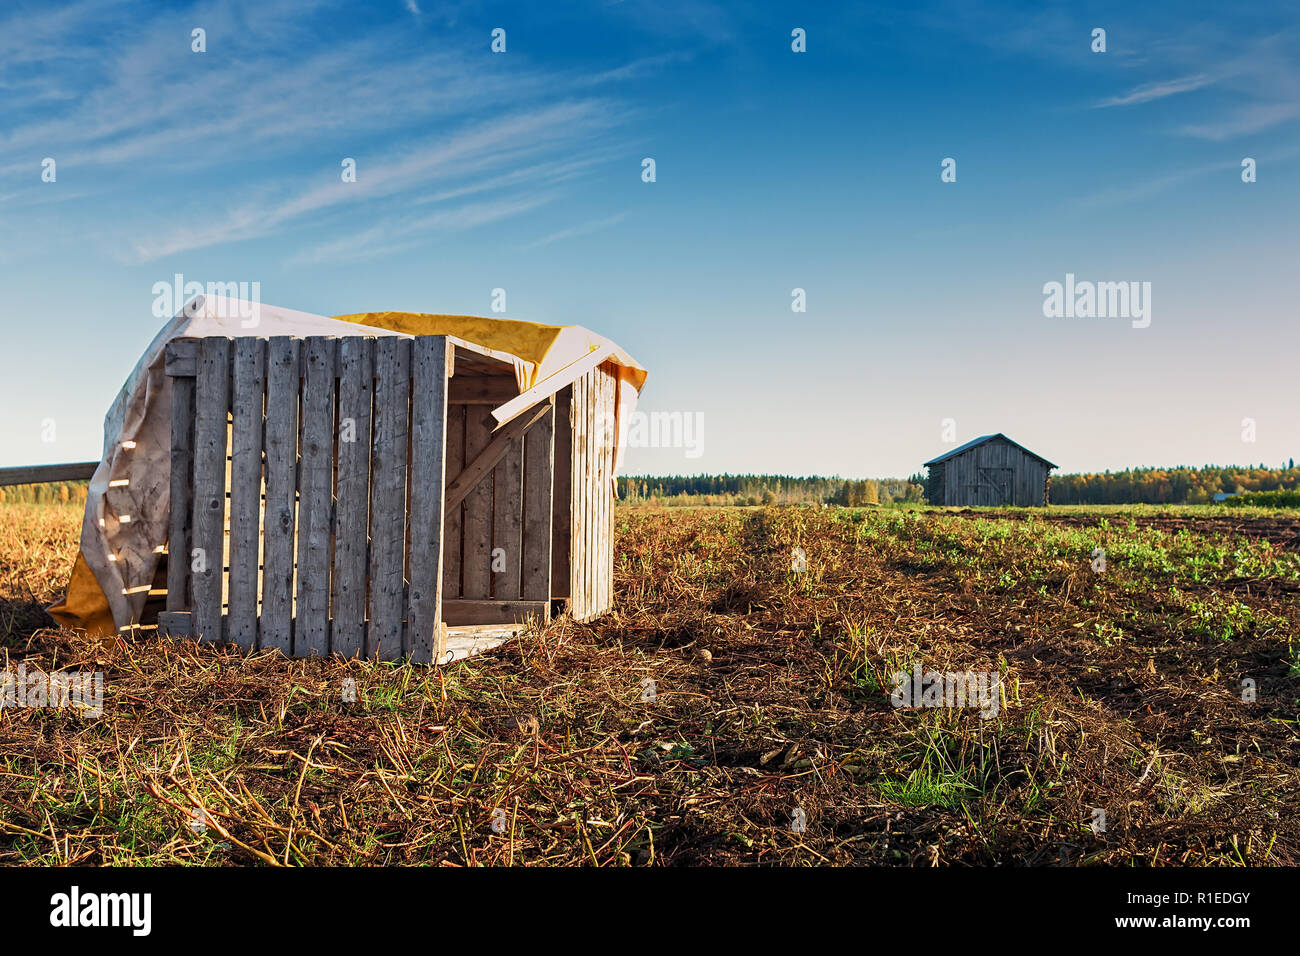 Two old wooden crates on an autumn field at the Northern Finland. The crates are used for storing potatoes. Stock Photo